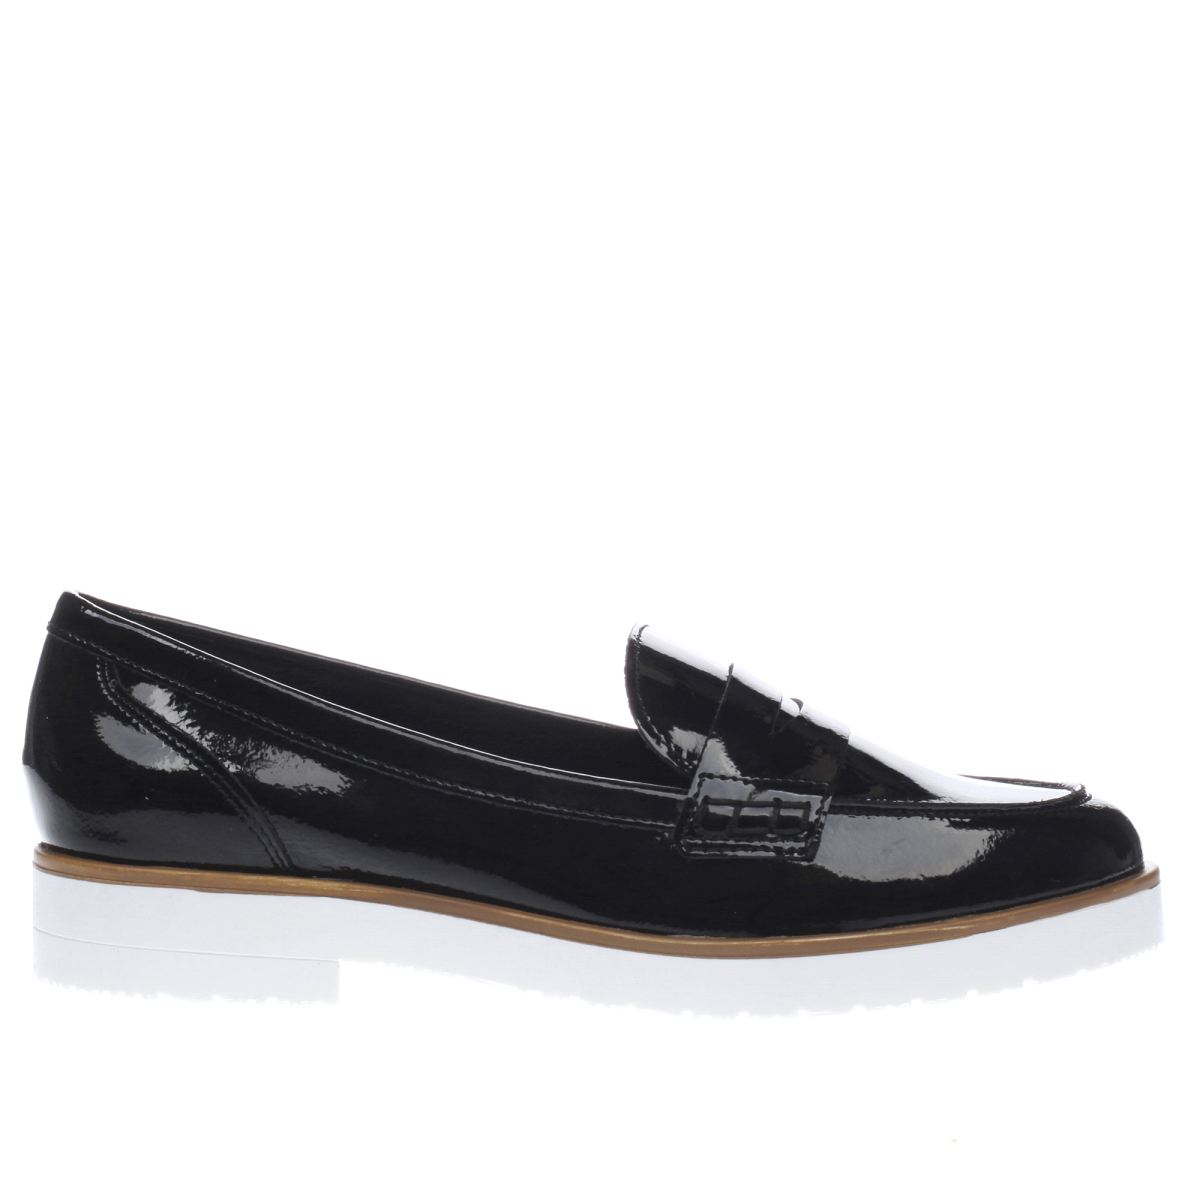 schuh black & white sphere flat shoes